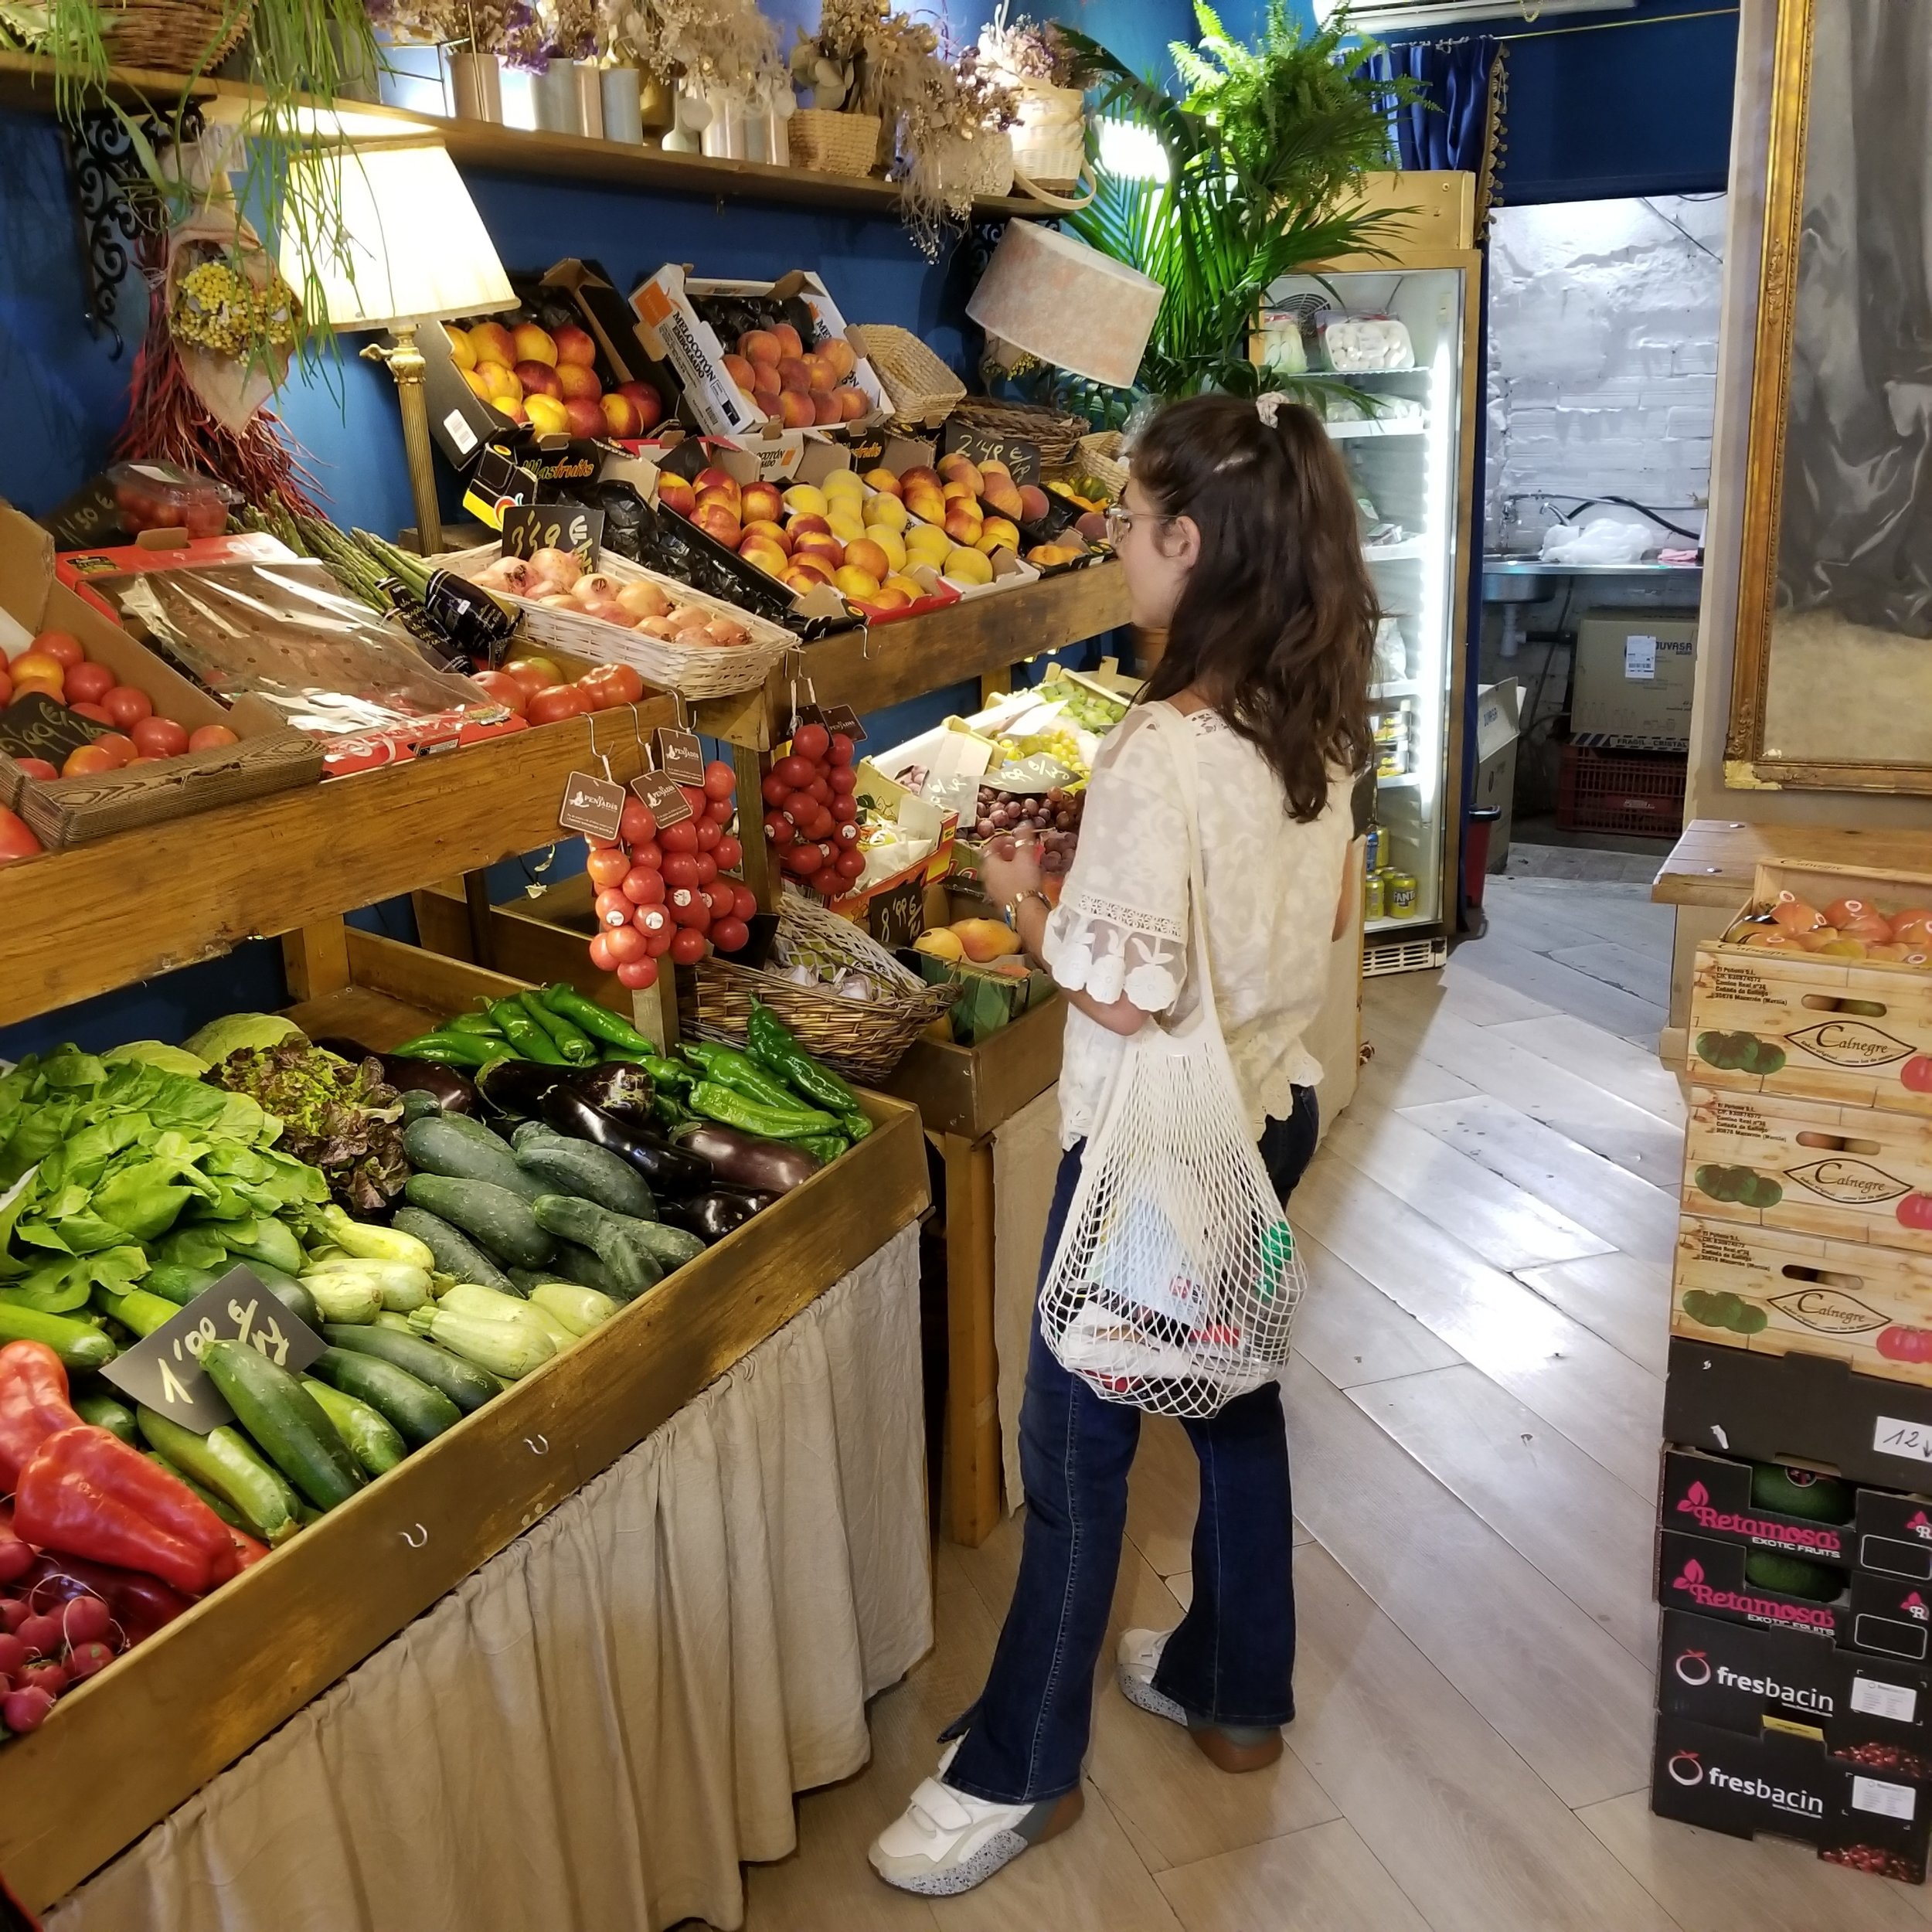 Buying fruits and veggies to cook in the Airbnb